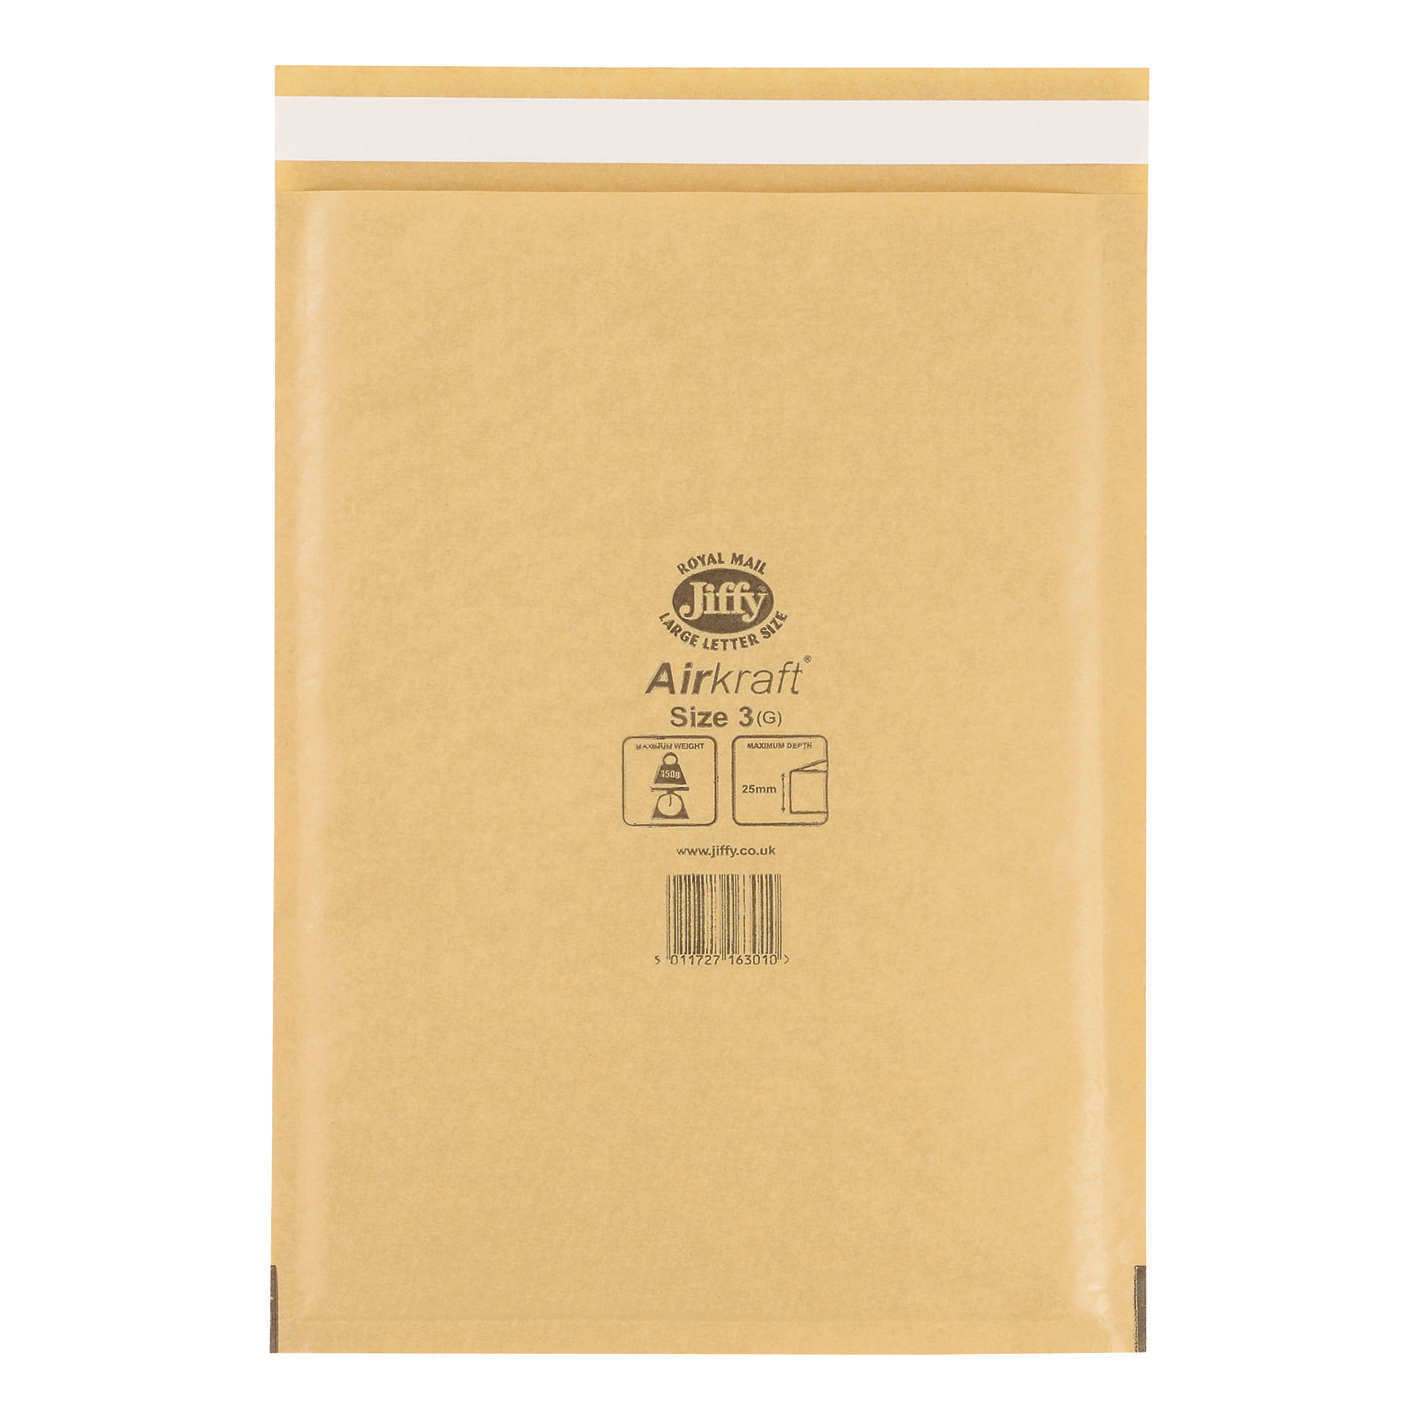 Jiffy Airkraft Bubble Bag Envelopes Size 3 220x320mm Gold Ref JL-GO-3 [Pack 50]